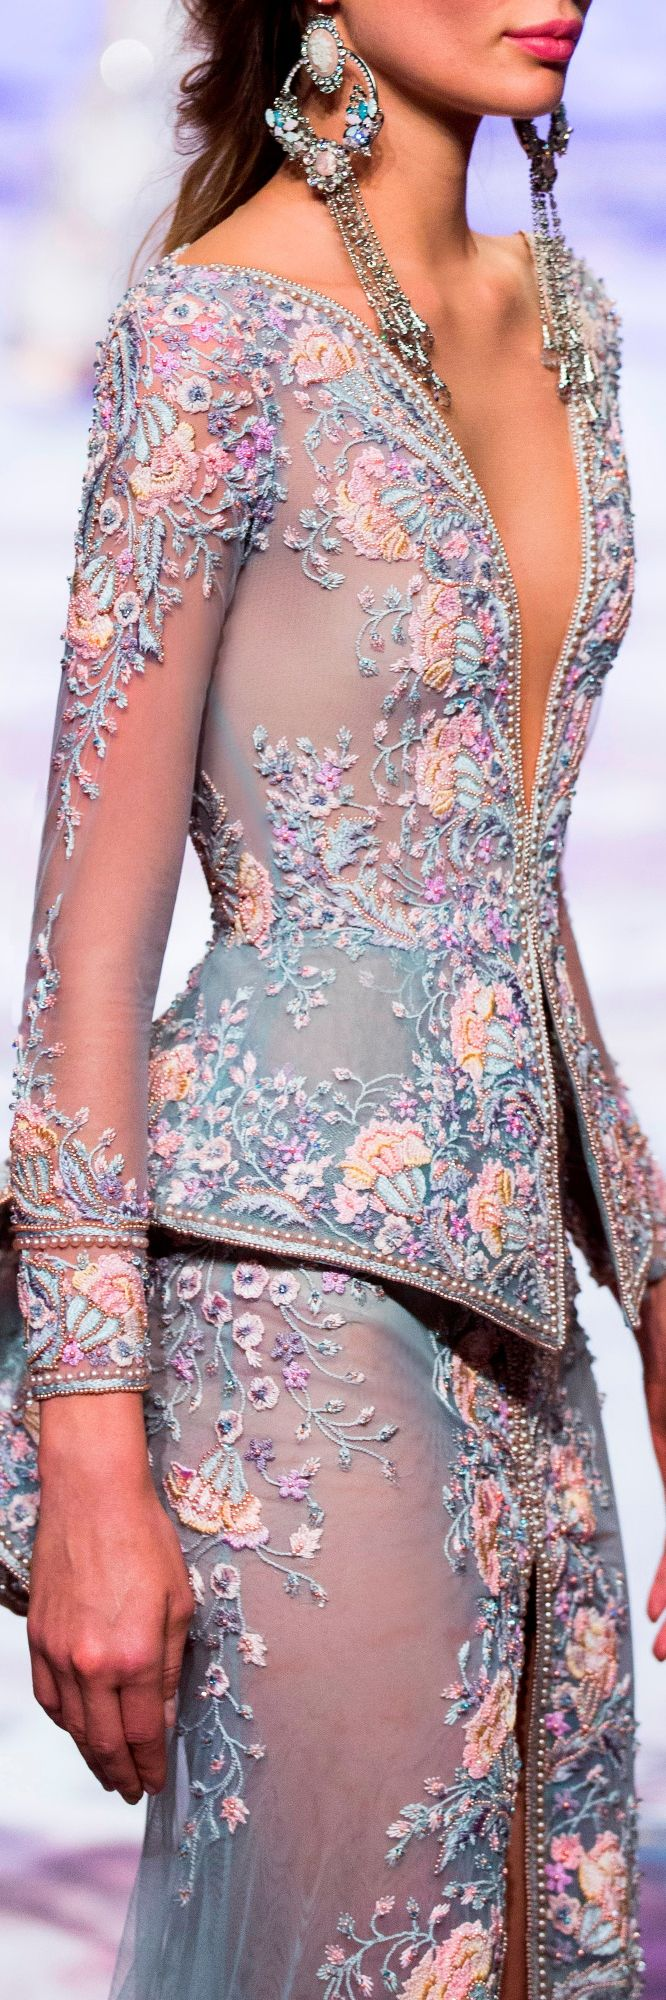 Michael Cinco Spring Summer 2017 Couture Collection v